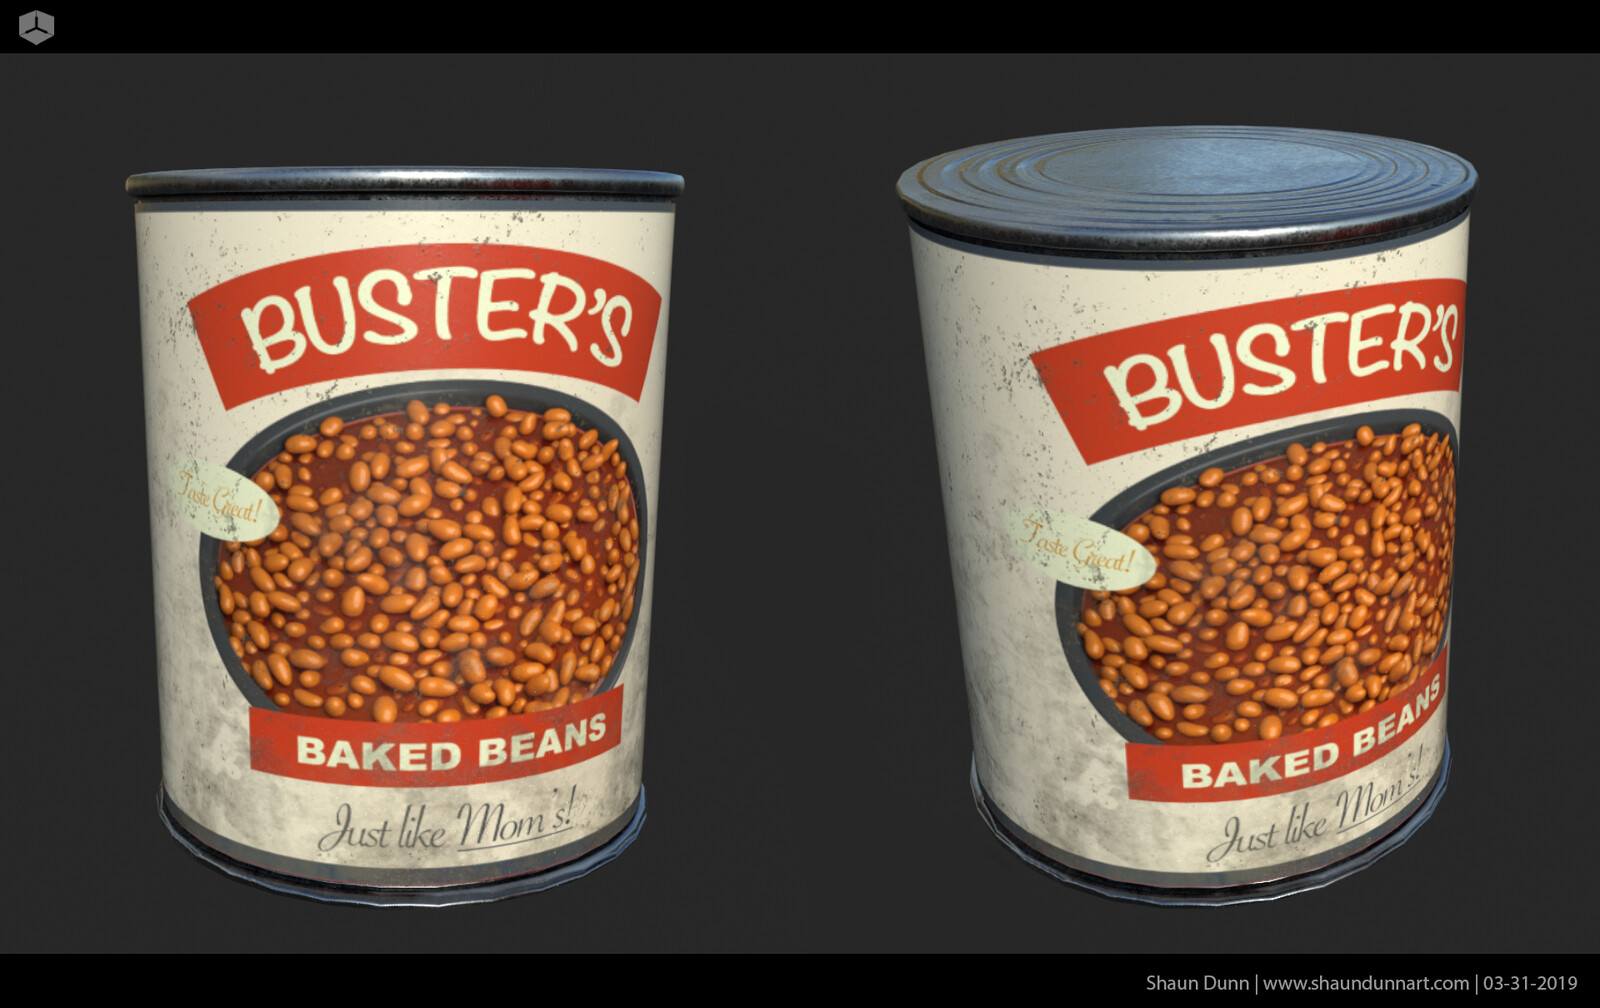 These baked beans were for another canned goods label that went on a shelf in the scene.